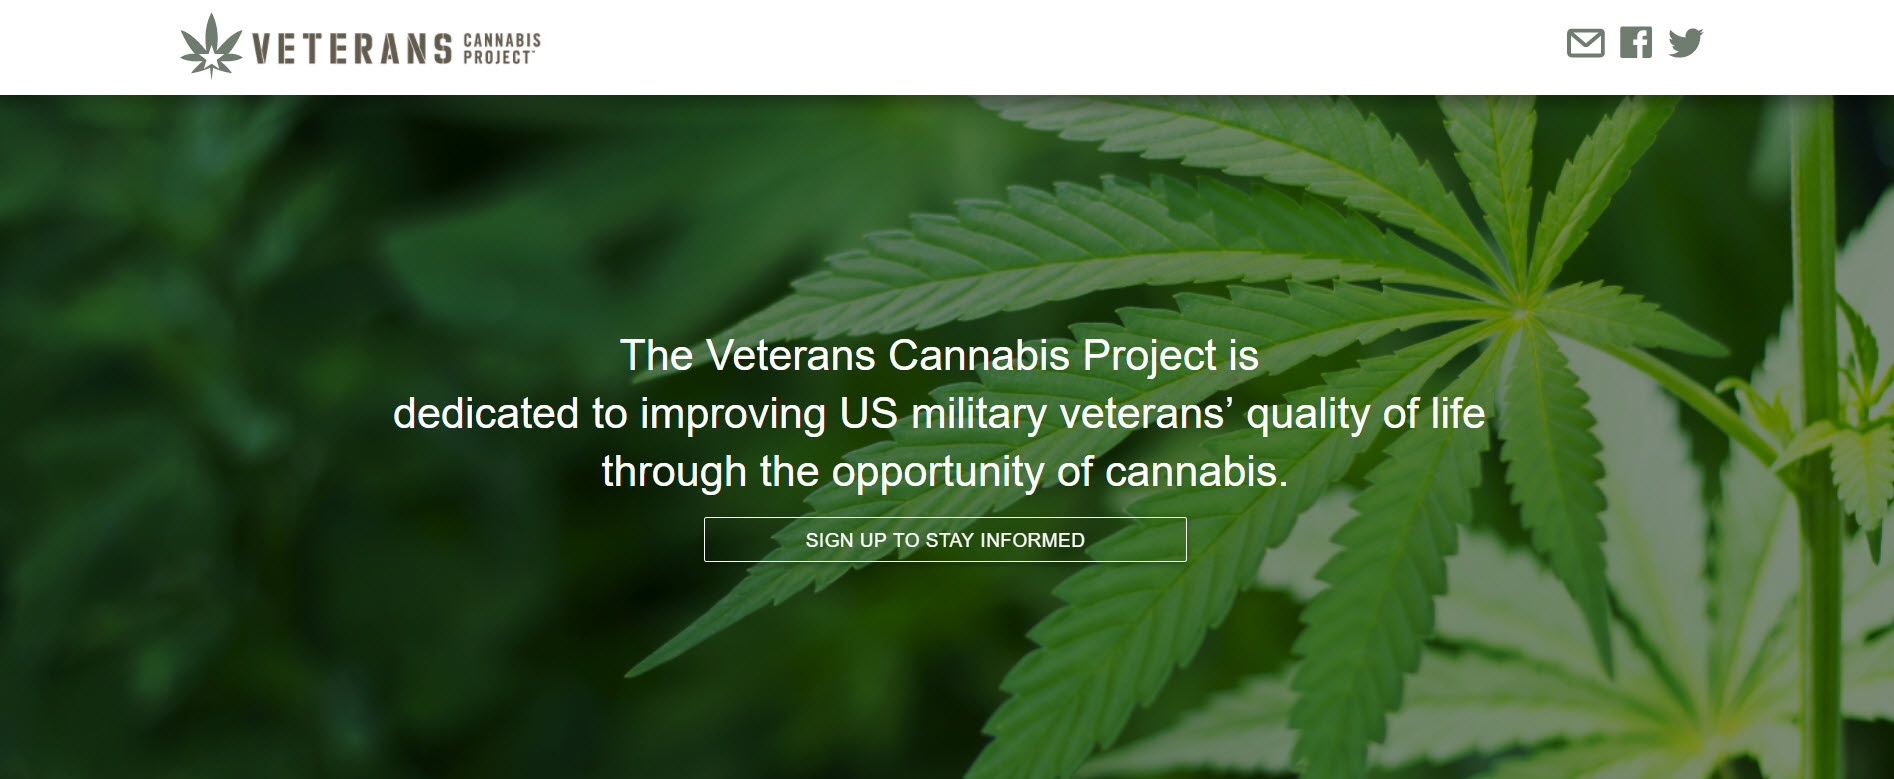 Veterans Cannabis Project: Policy Challenges